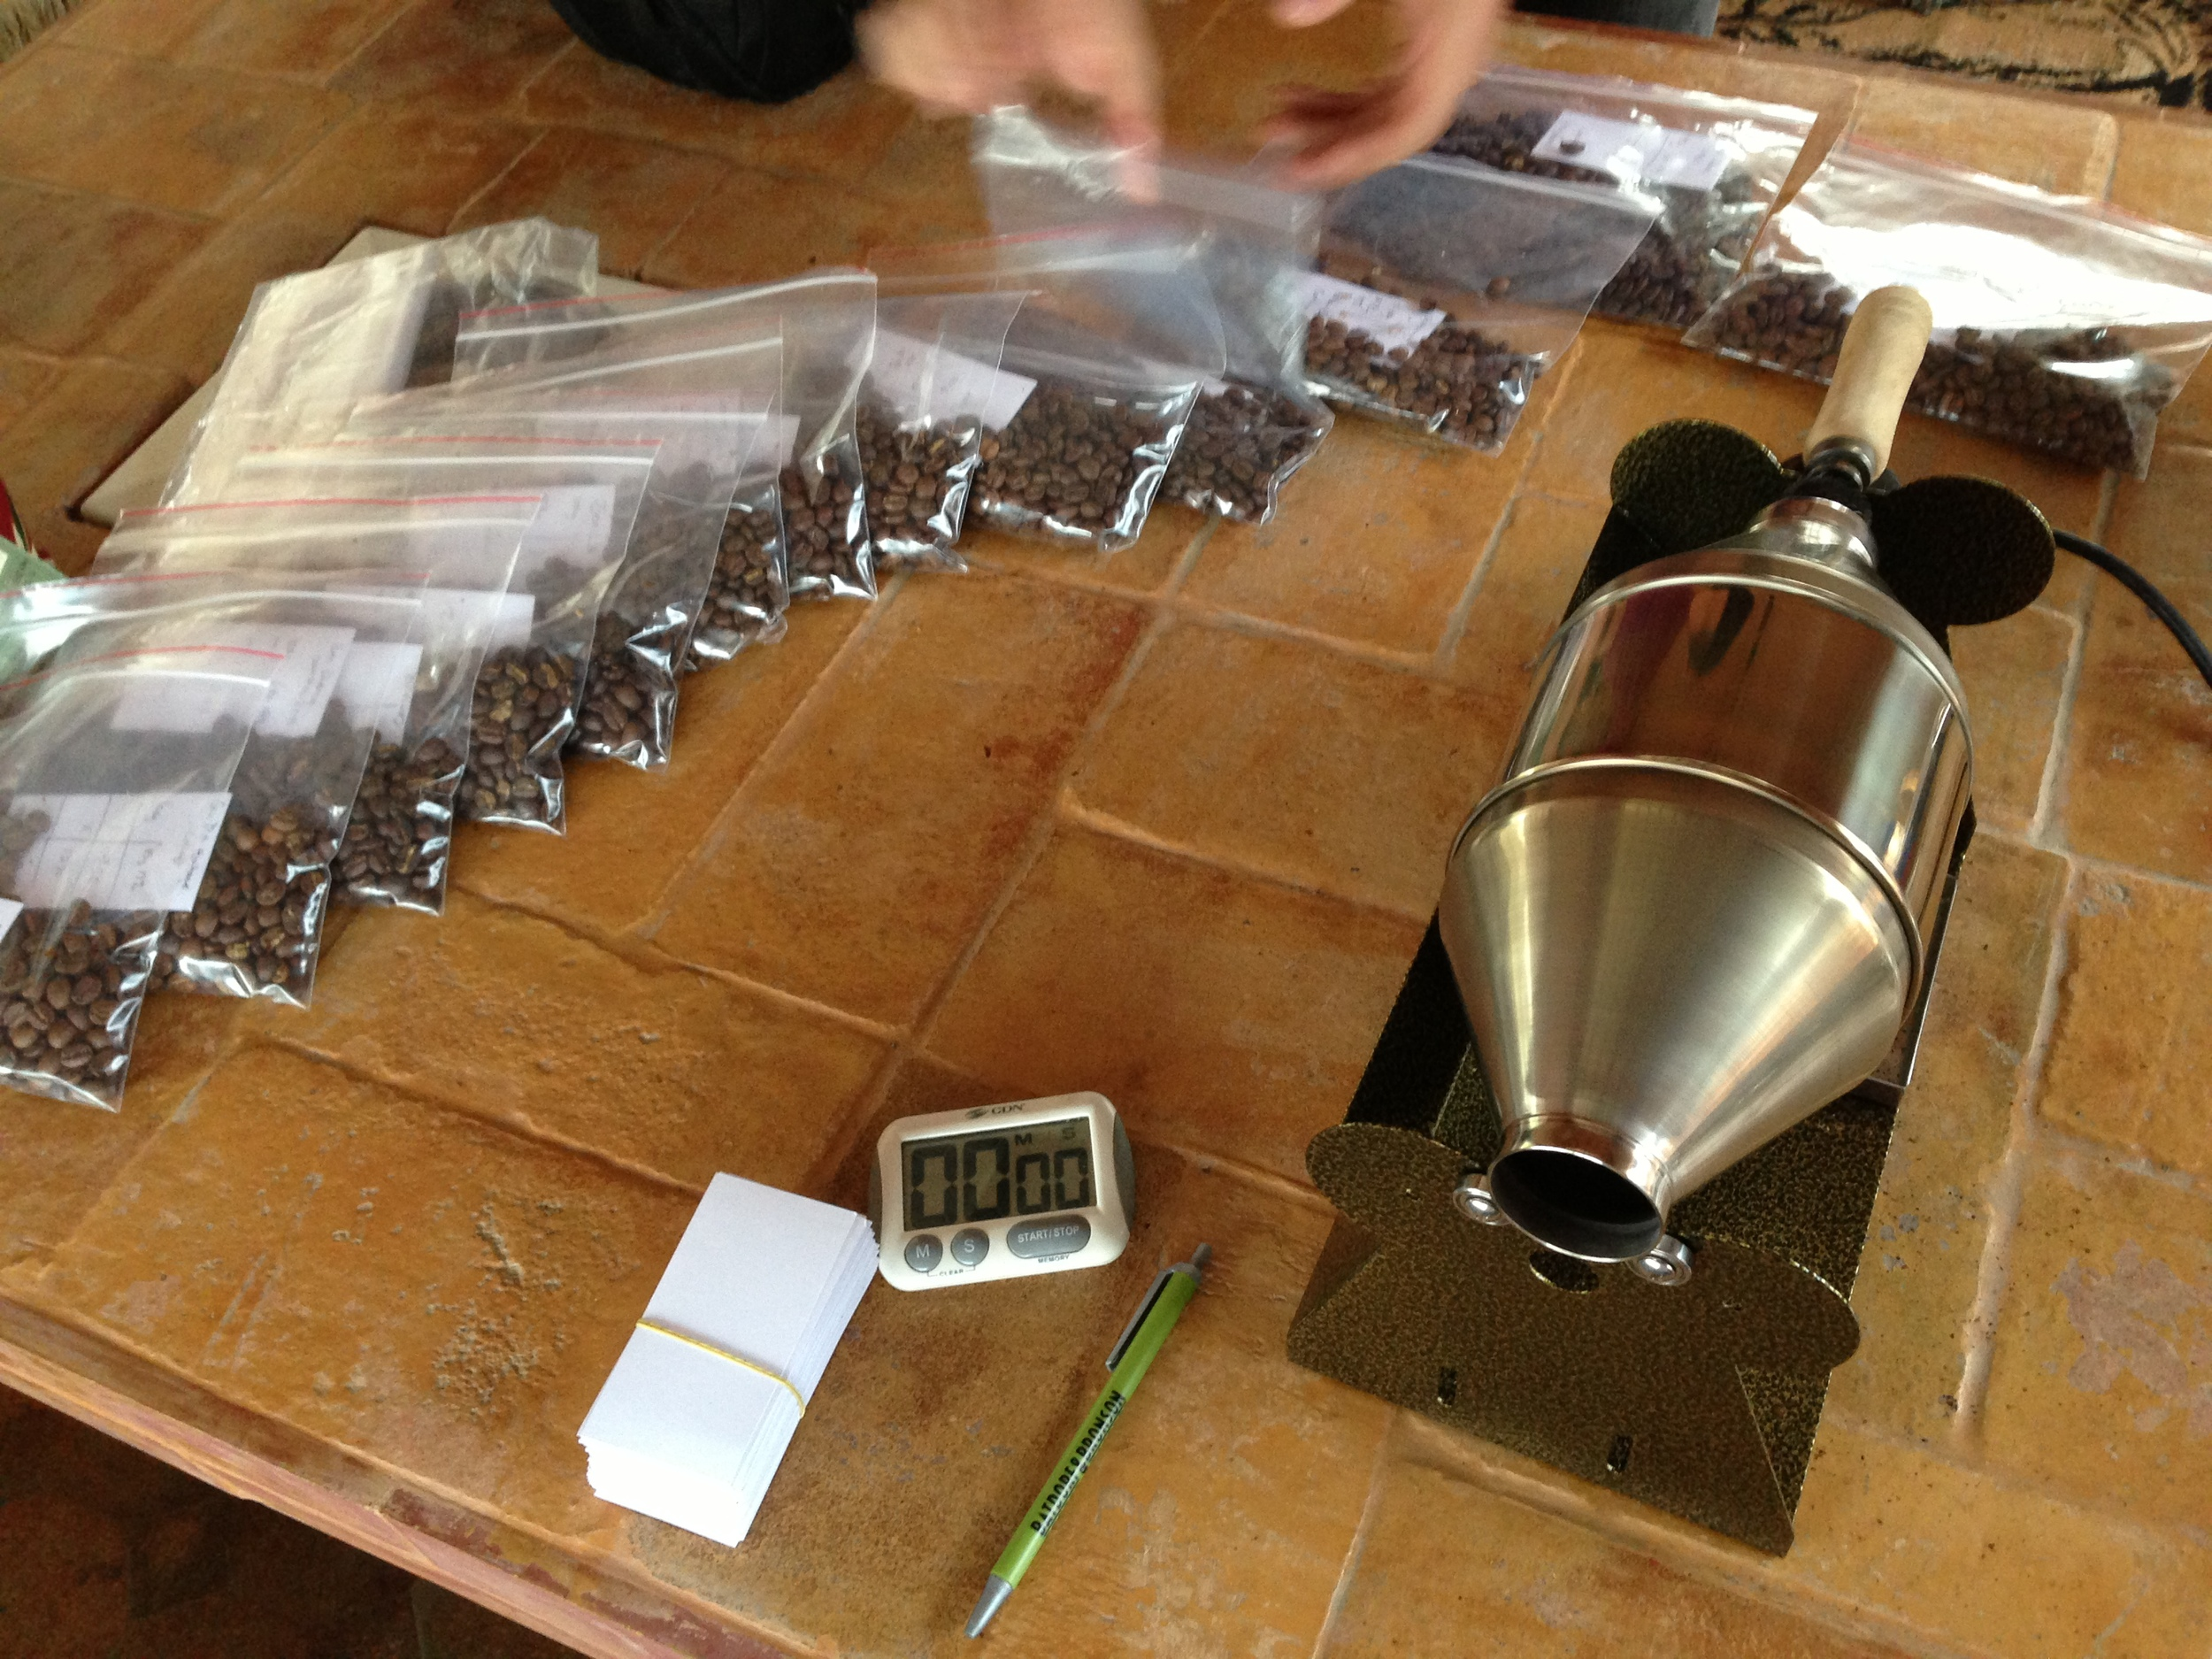 After three hours of set-up, roasting and labeling, the samples will rest until the next day's cupping.